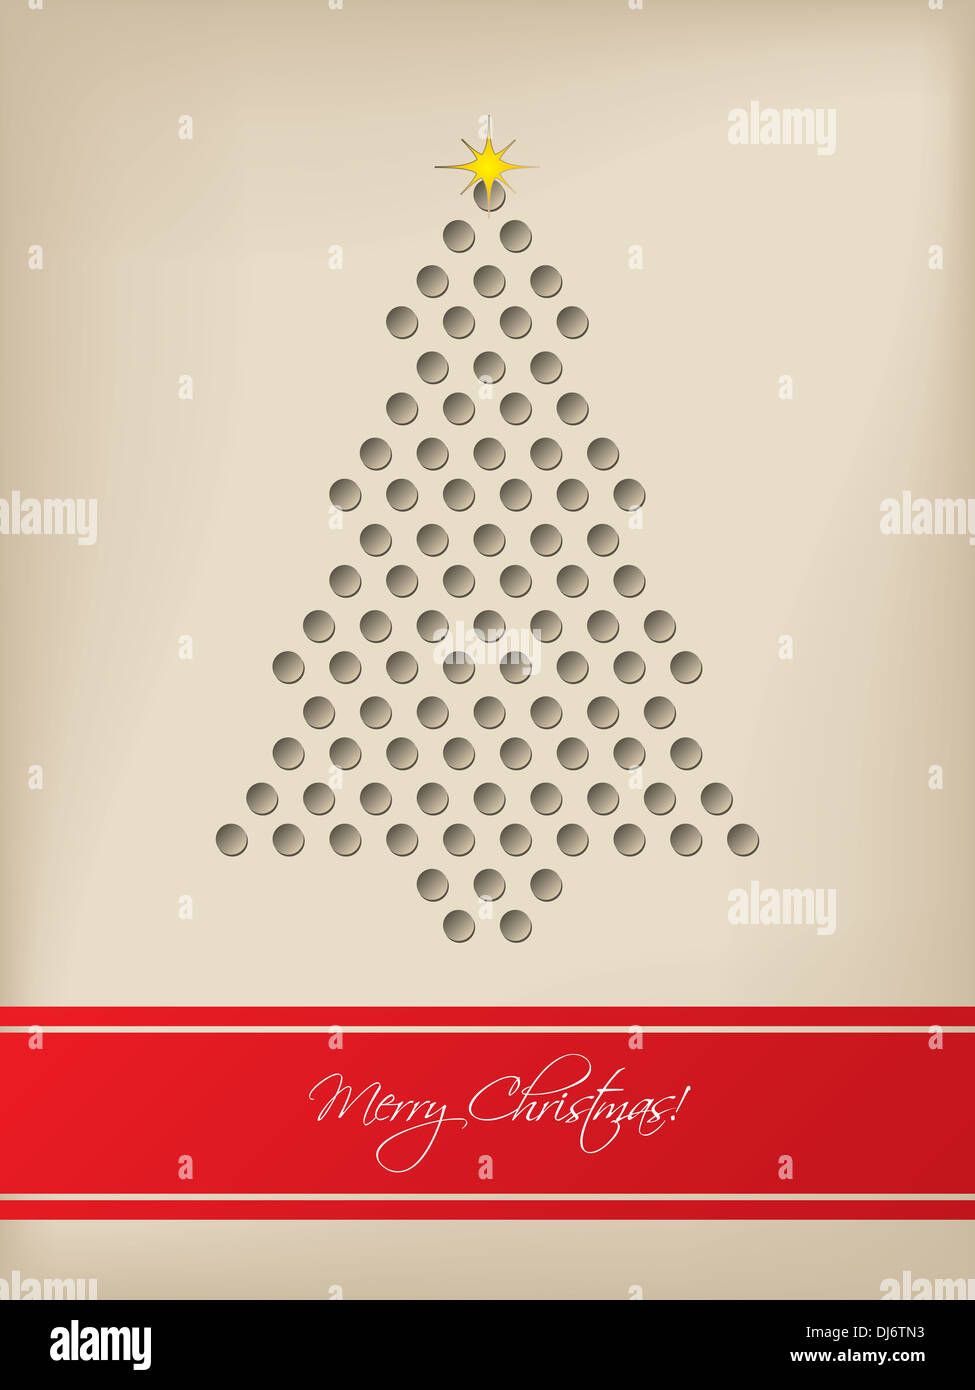 Cool Christmas Card Design With Tree Shaped 3d Dots And Red Stripe